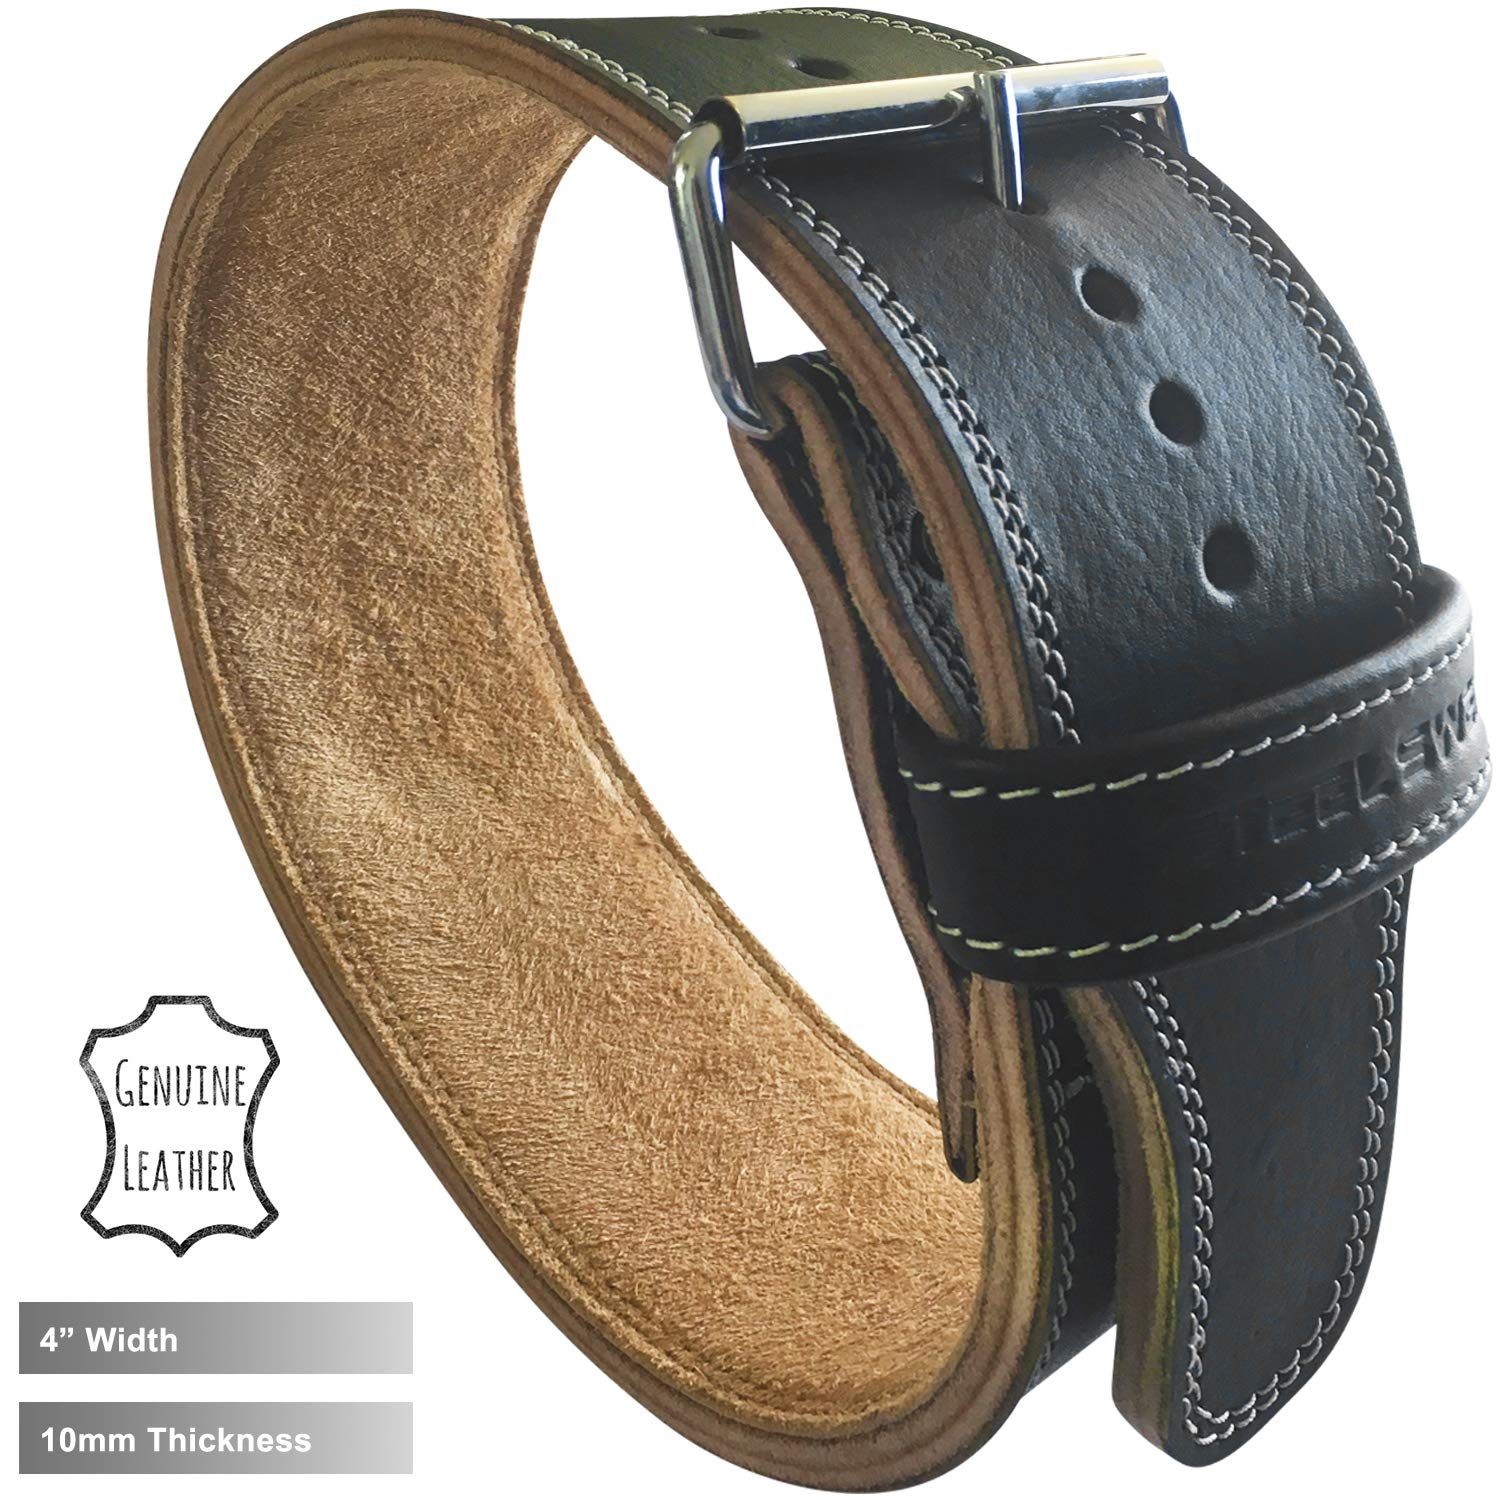 Steel Sweat Weight Lifting Belt - 4 Inches Wide by 10mm - Single Prong Powerlifting Belt That's Heavy Duty - Genuine Cowhide Leather - Medium Texus by Steel Sweat (Image #4)